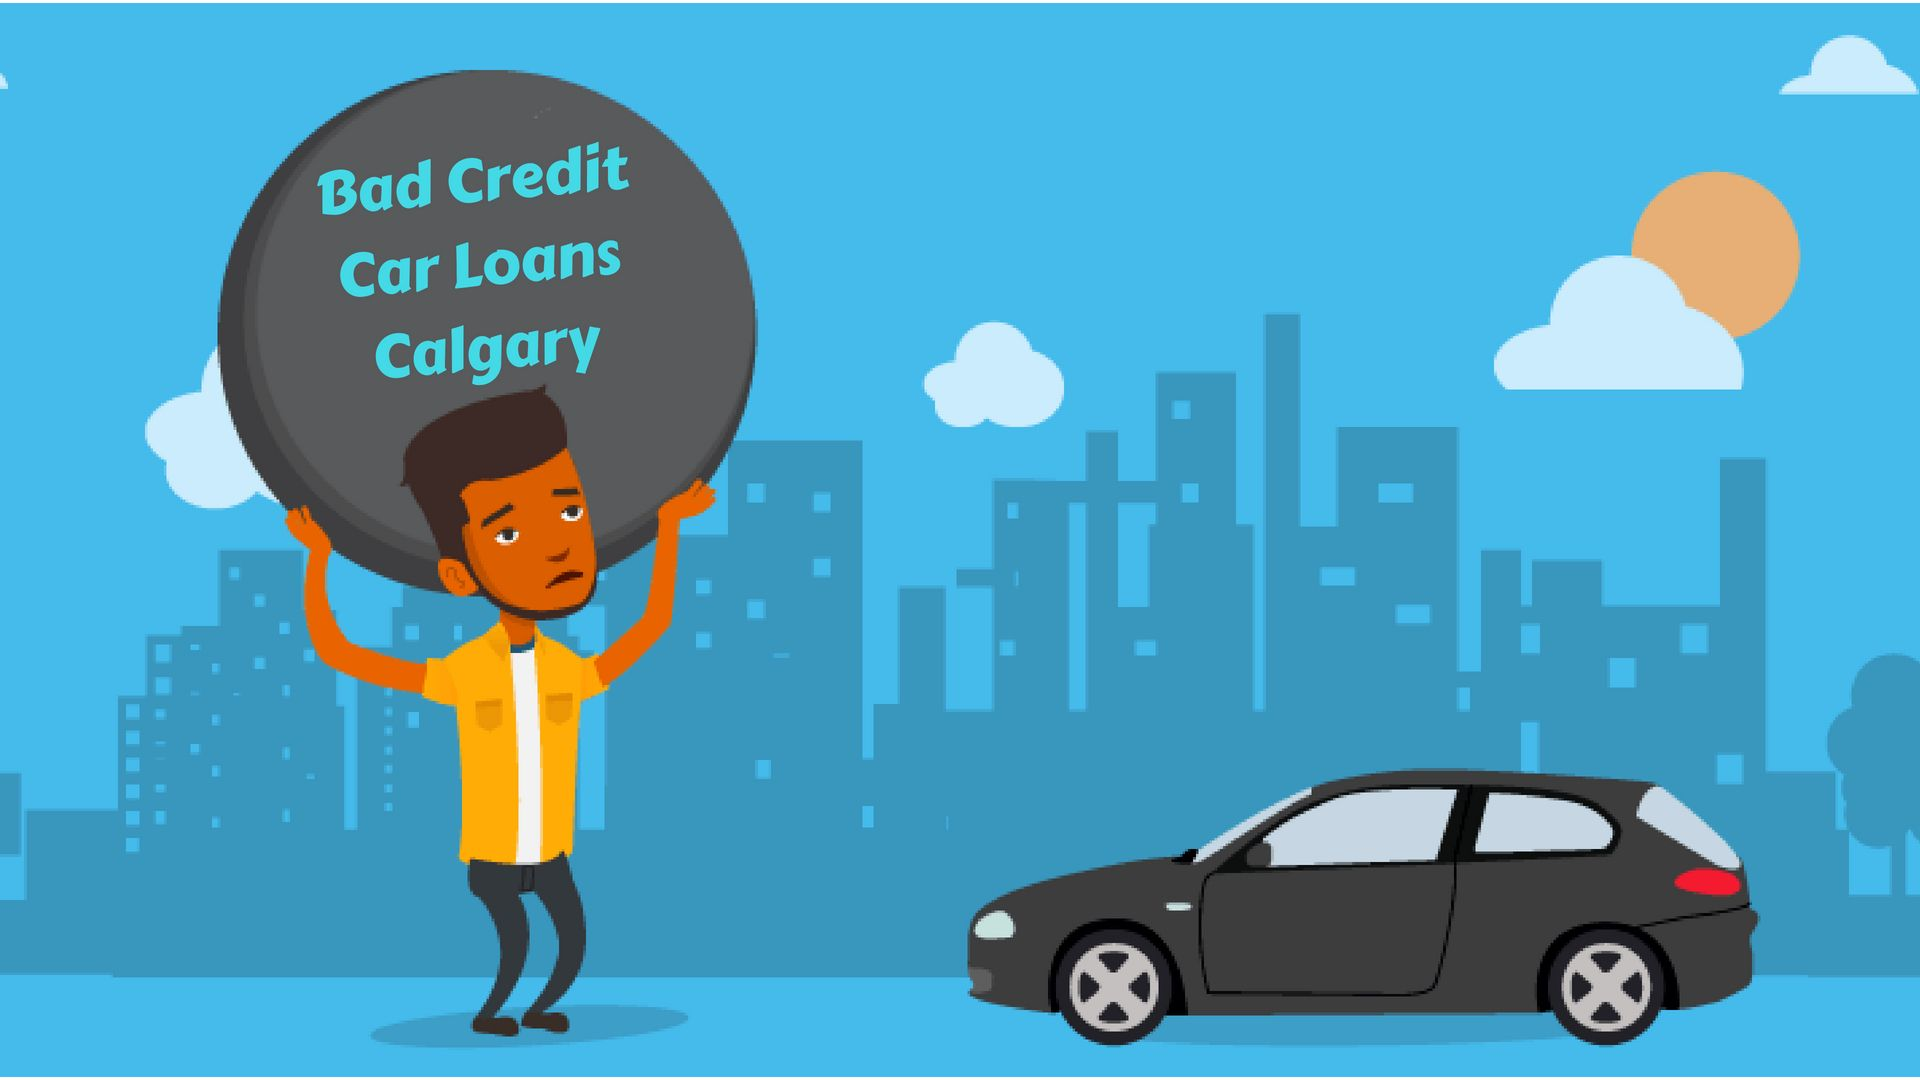 Do You Need Money Quick Pit Stop Loans Providing Bad Credit Car Loans In Calgary If You Are In Need Of Quick Cash T Bad Credit Car Loan Car Loans Credit